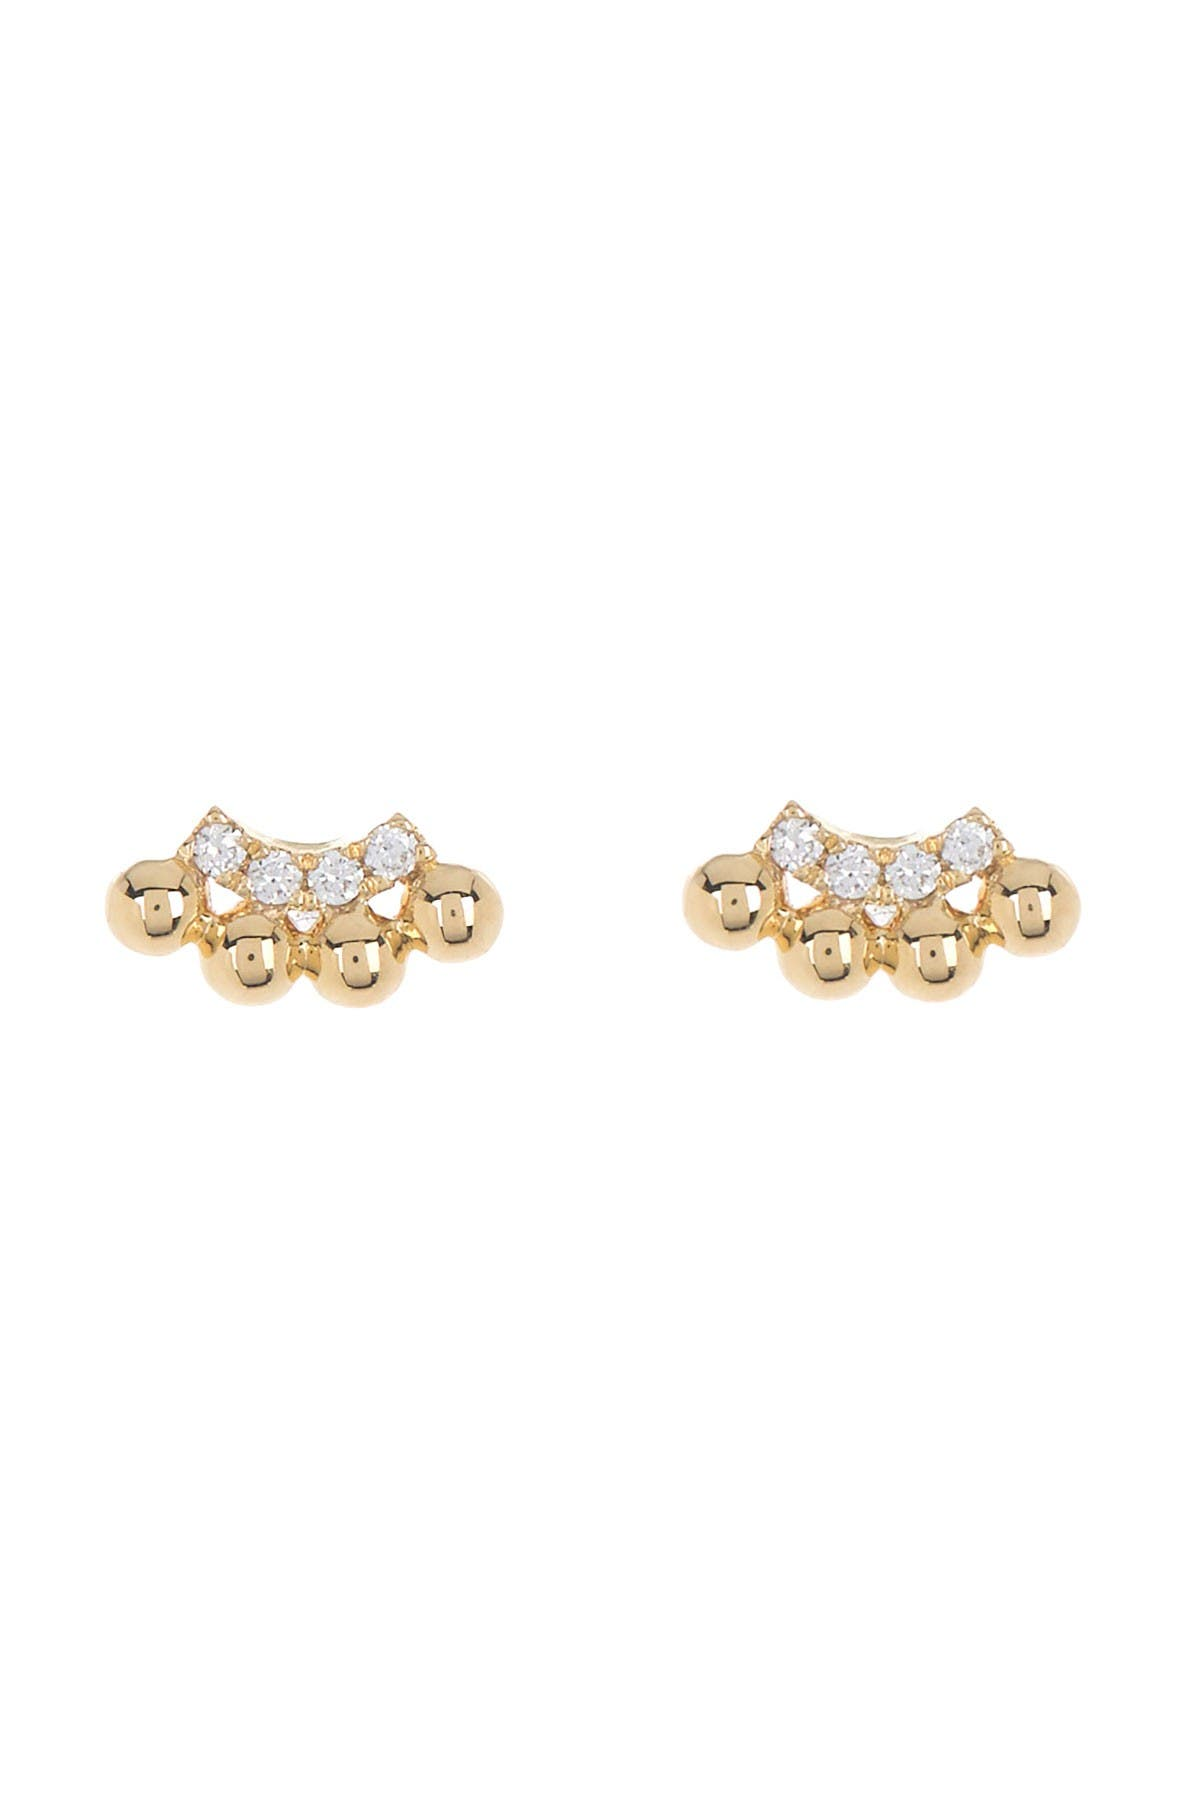 Image of Bony Levy 18K Yellow Gold Petite Bead & Diamond Curve Earrings